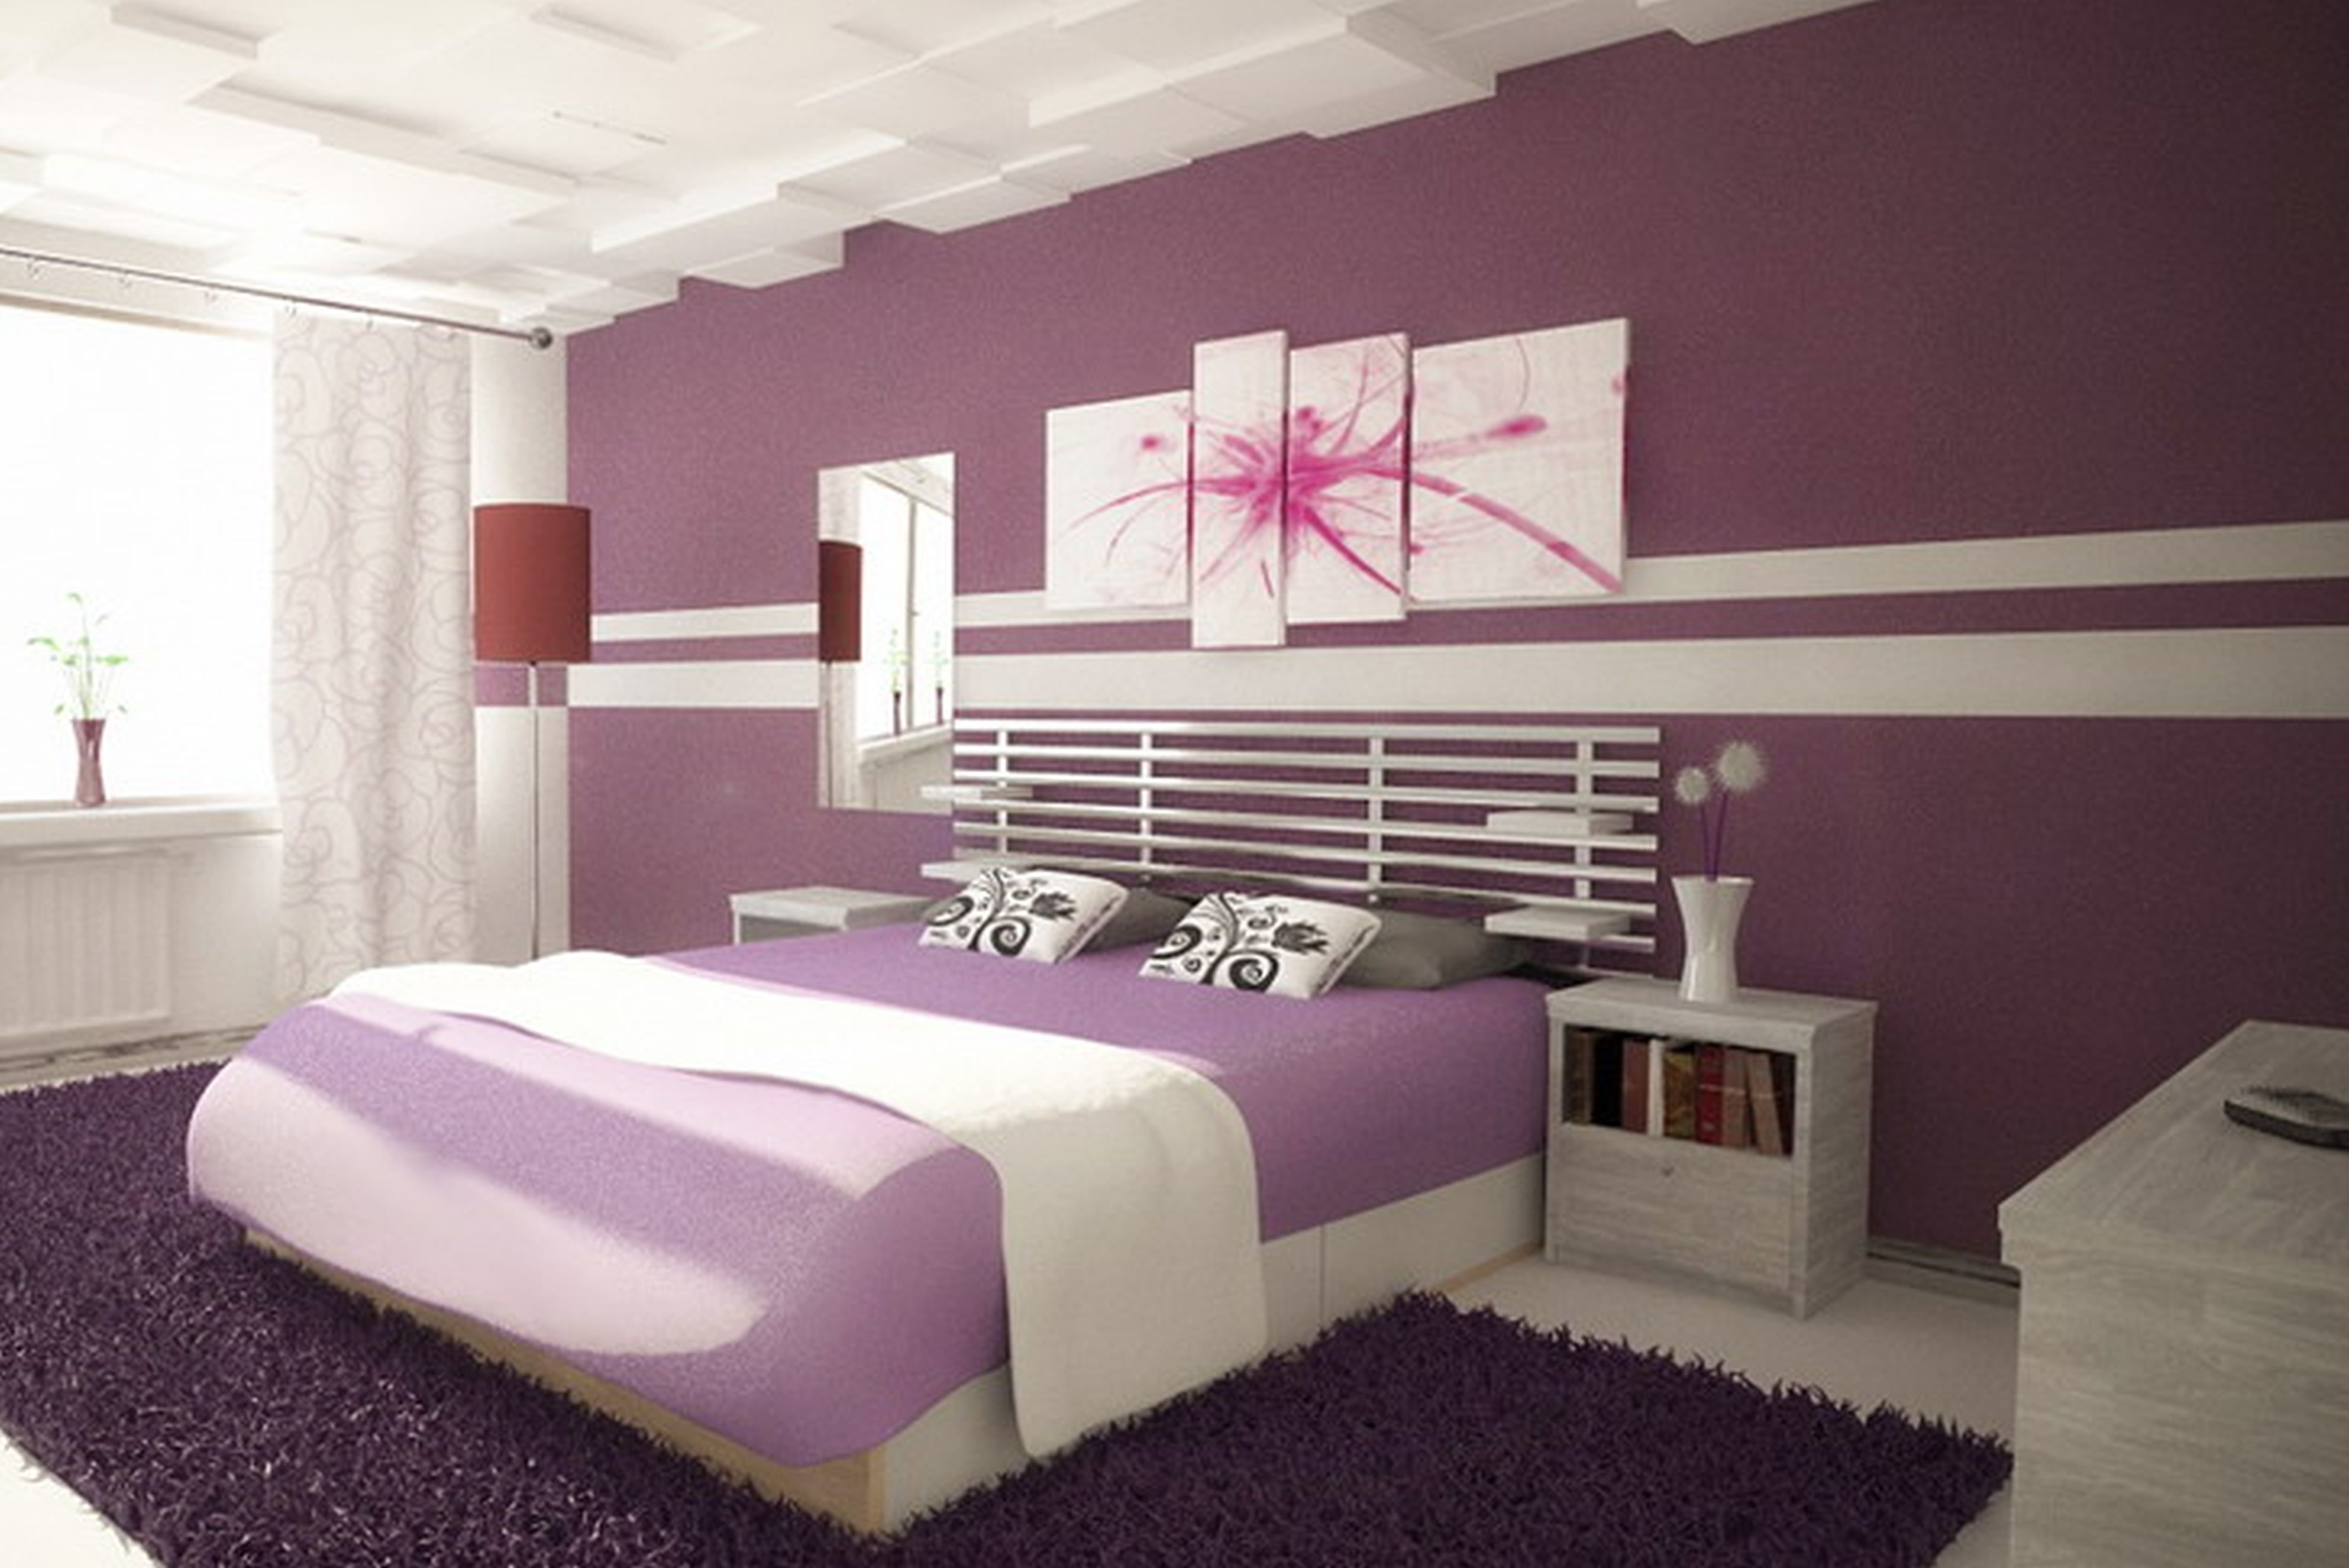 10 Cute Cute Ideas For Your Room creative and cute bedroom ideas cute bedroom designs for small 2020